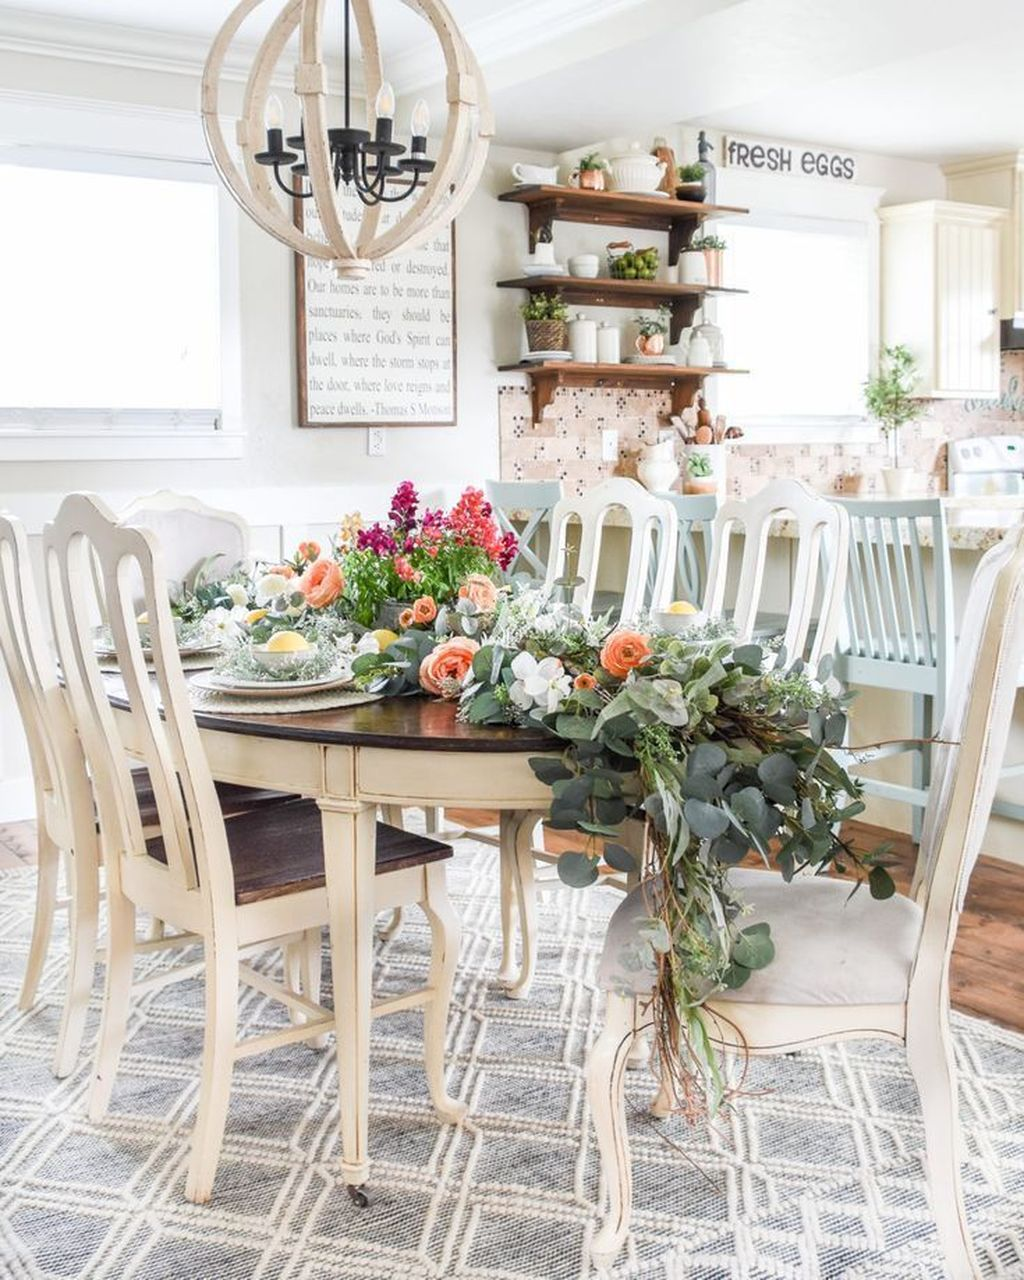 Best Summer Interior Design Ideas To Beautify Your Home 29